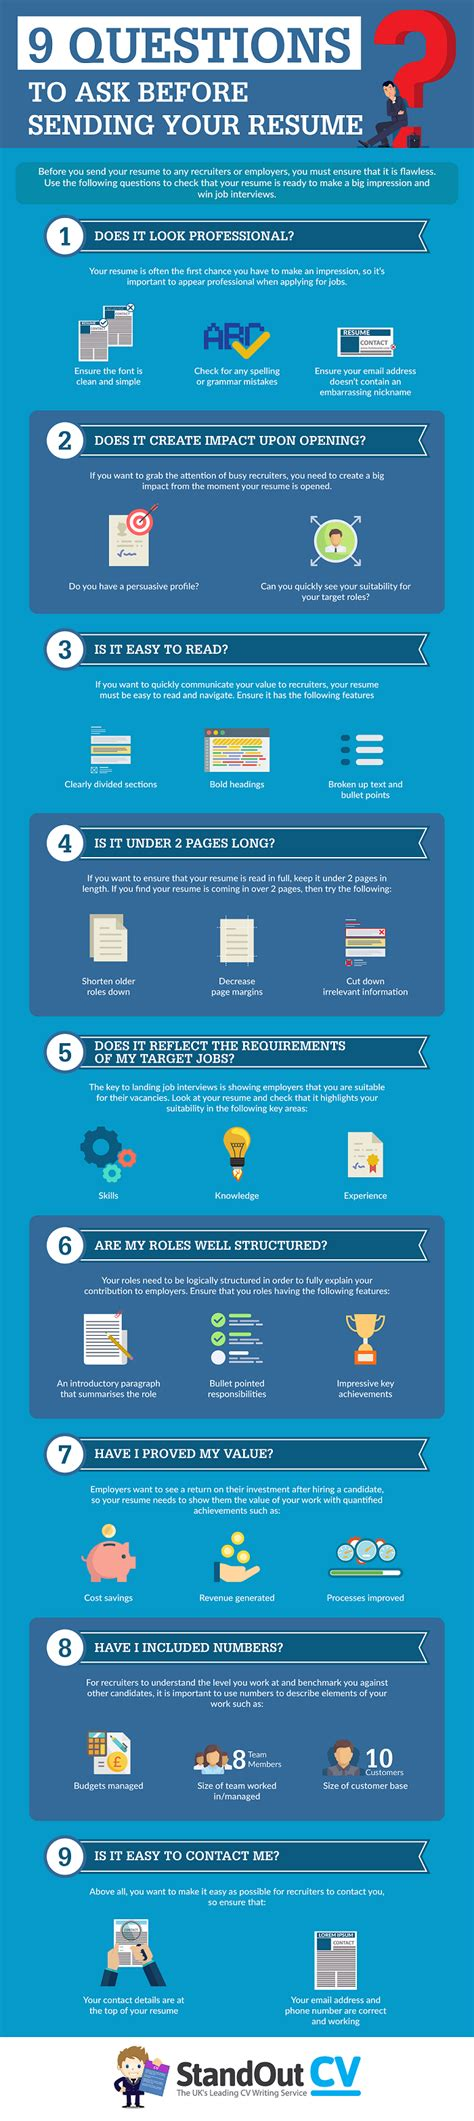 9 questions to ask before sending your resume workopolis